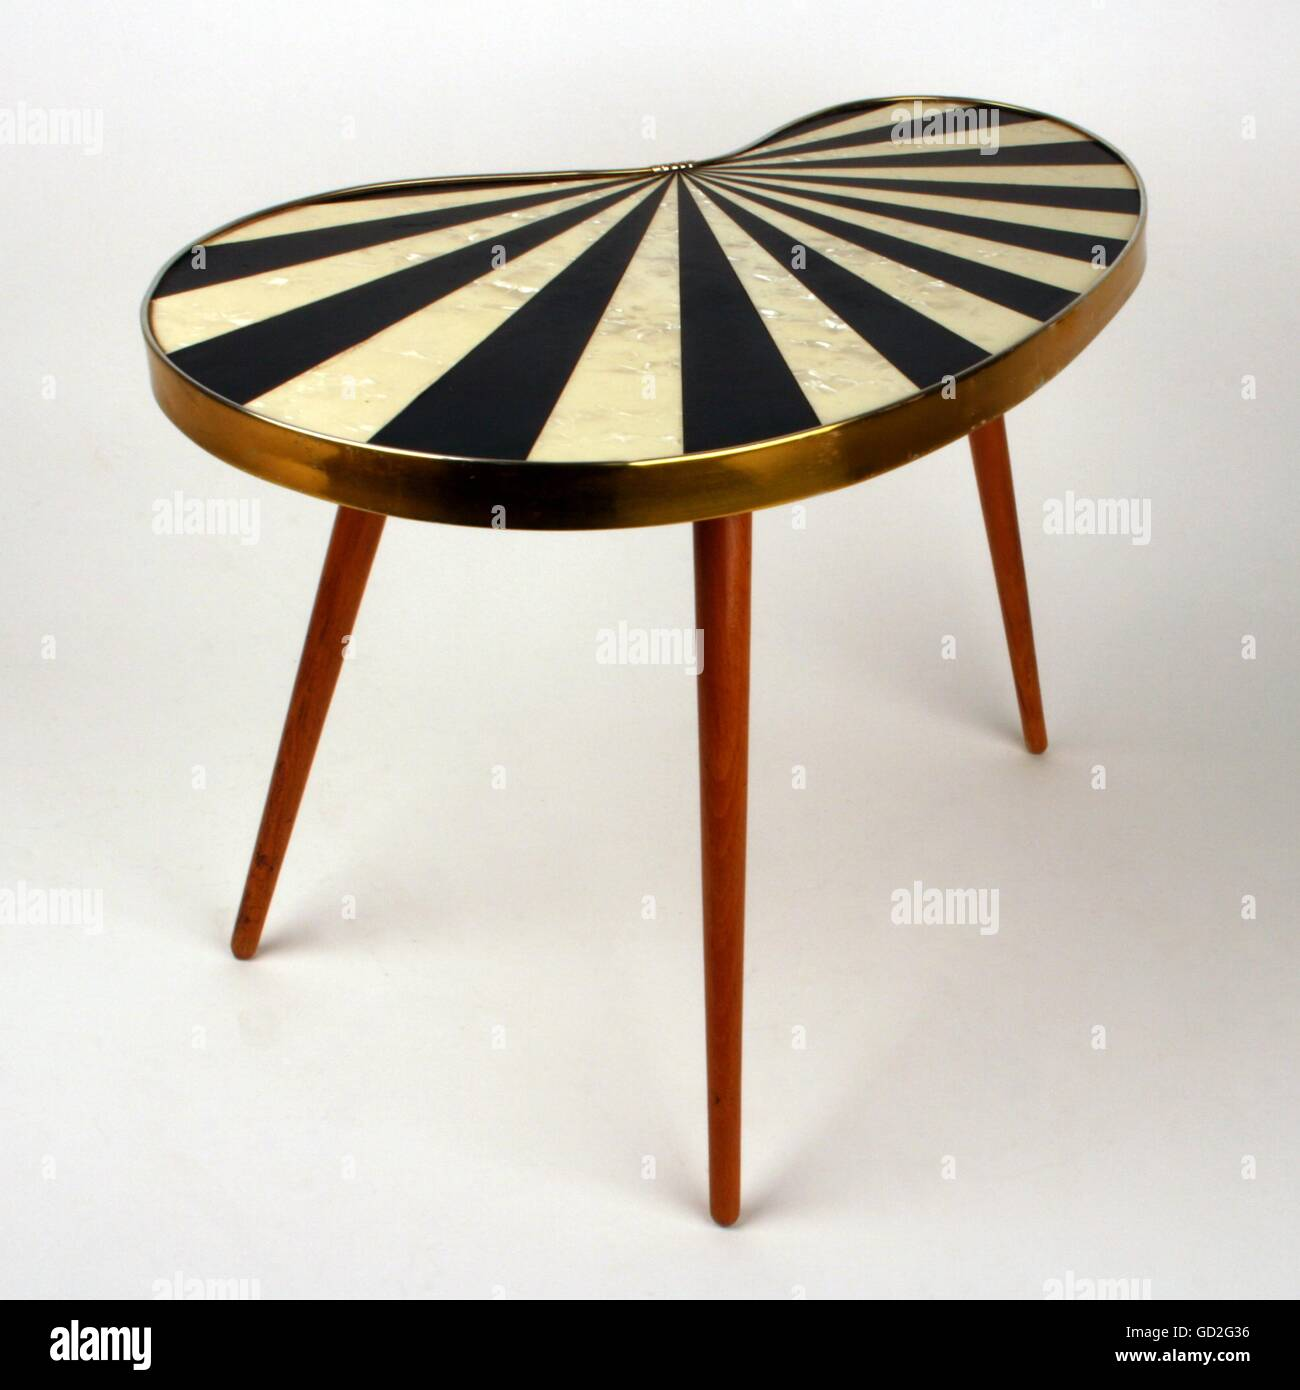 furniture examples. Furnishings, Furniture, Small Kidney Table (jardinière), Design Based On Western Examples, Made By: Several Craft Enterprises In The GDR, East-Germany, Furniture Examples